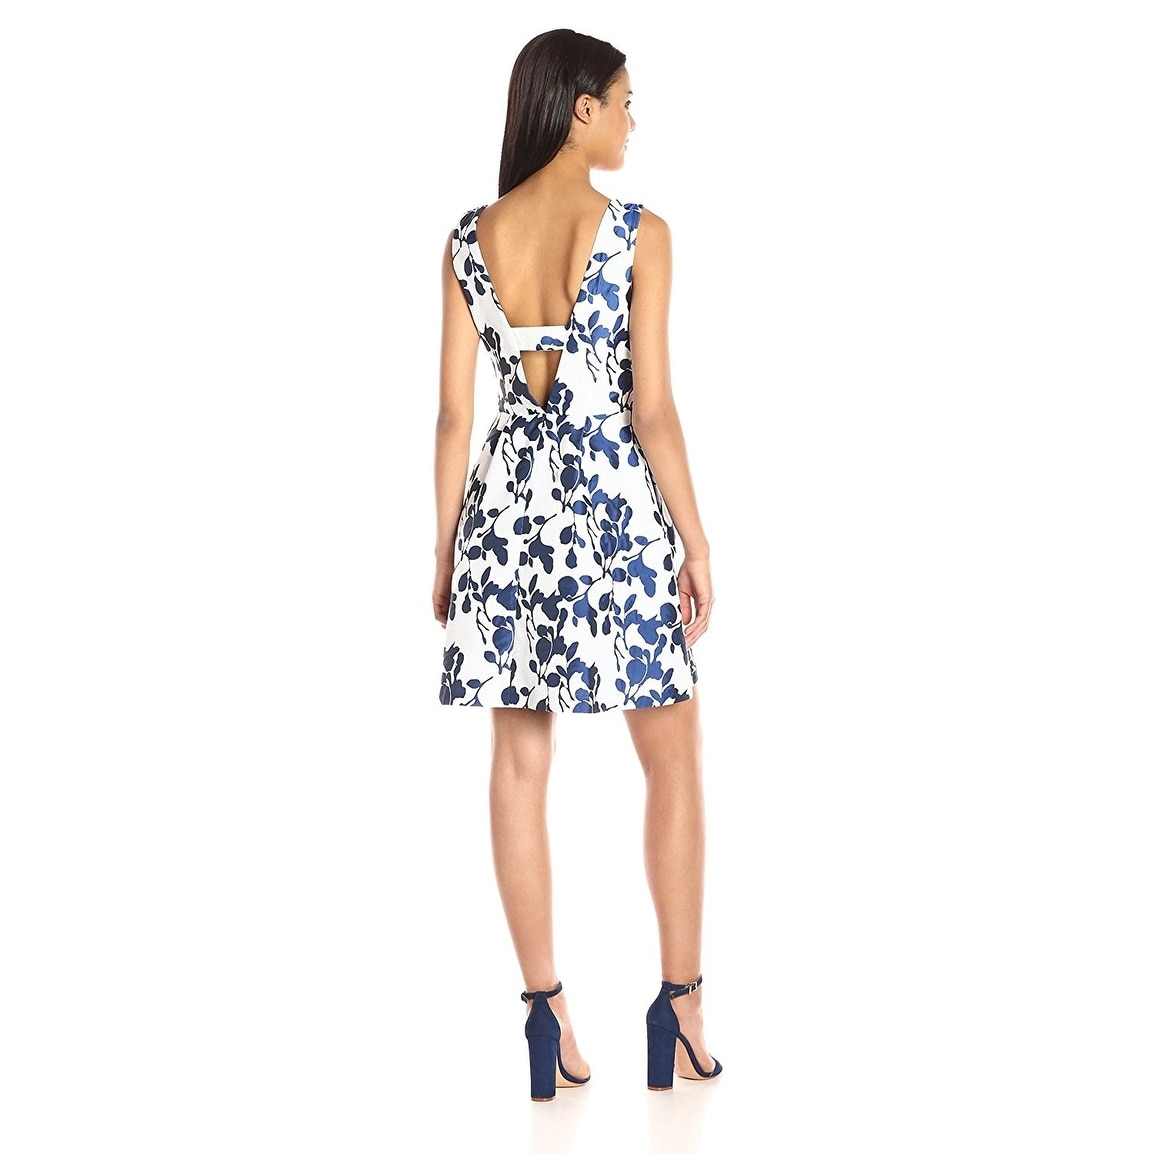 257ab6c5cde Shop Betsey Johnson Floral Jacquard V-Neck Fit   Flare Cocktail Day Dress  Ivory Navy - Free Shipping Today - Overstock - 18683581